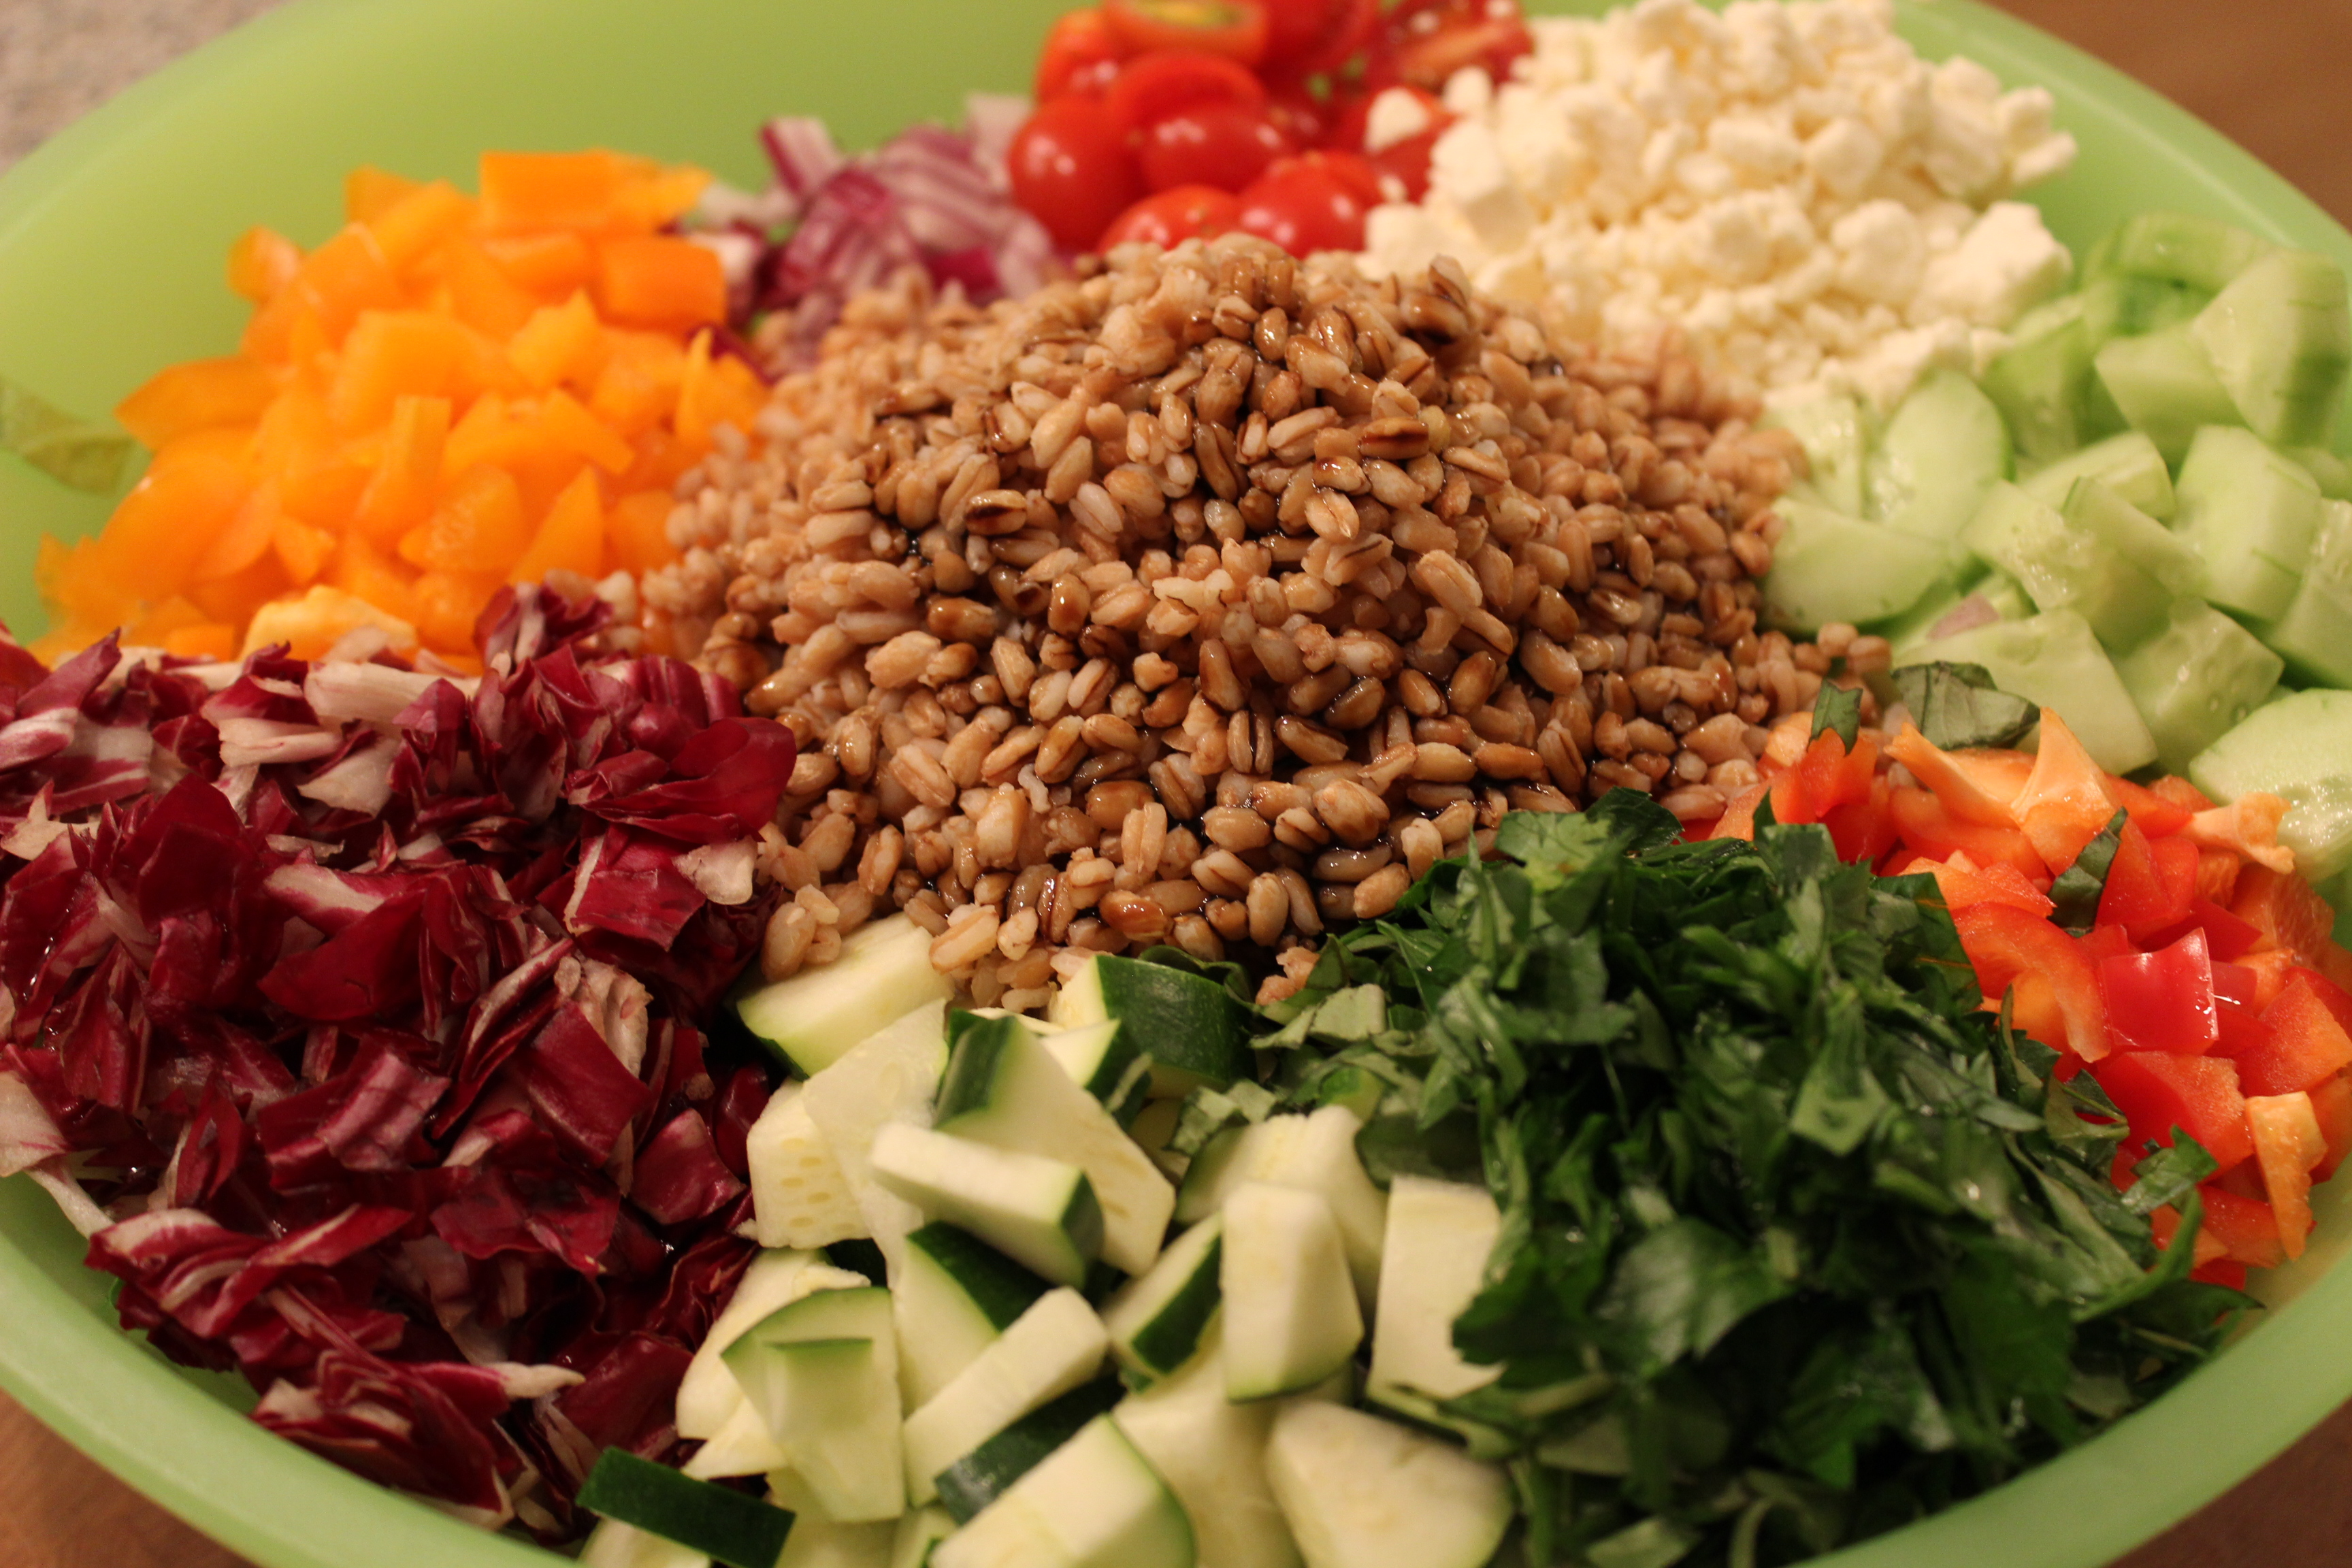 Farro Chopped Salad -One salad that can even be considered a meal ...